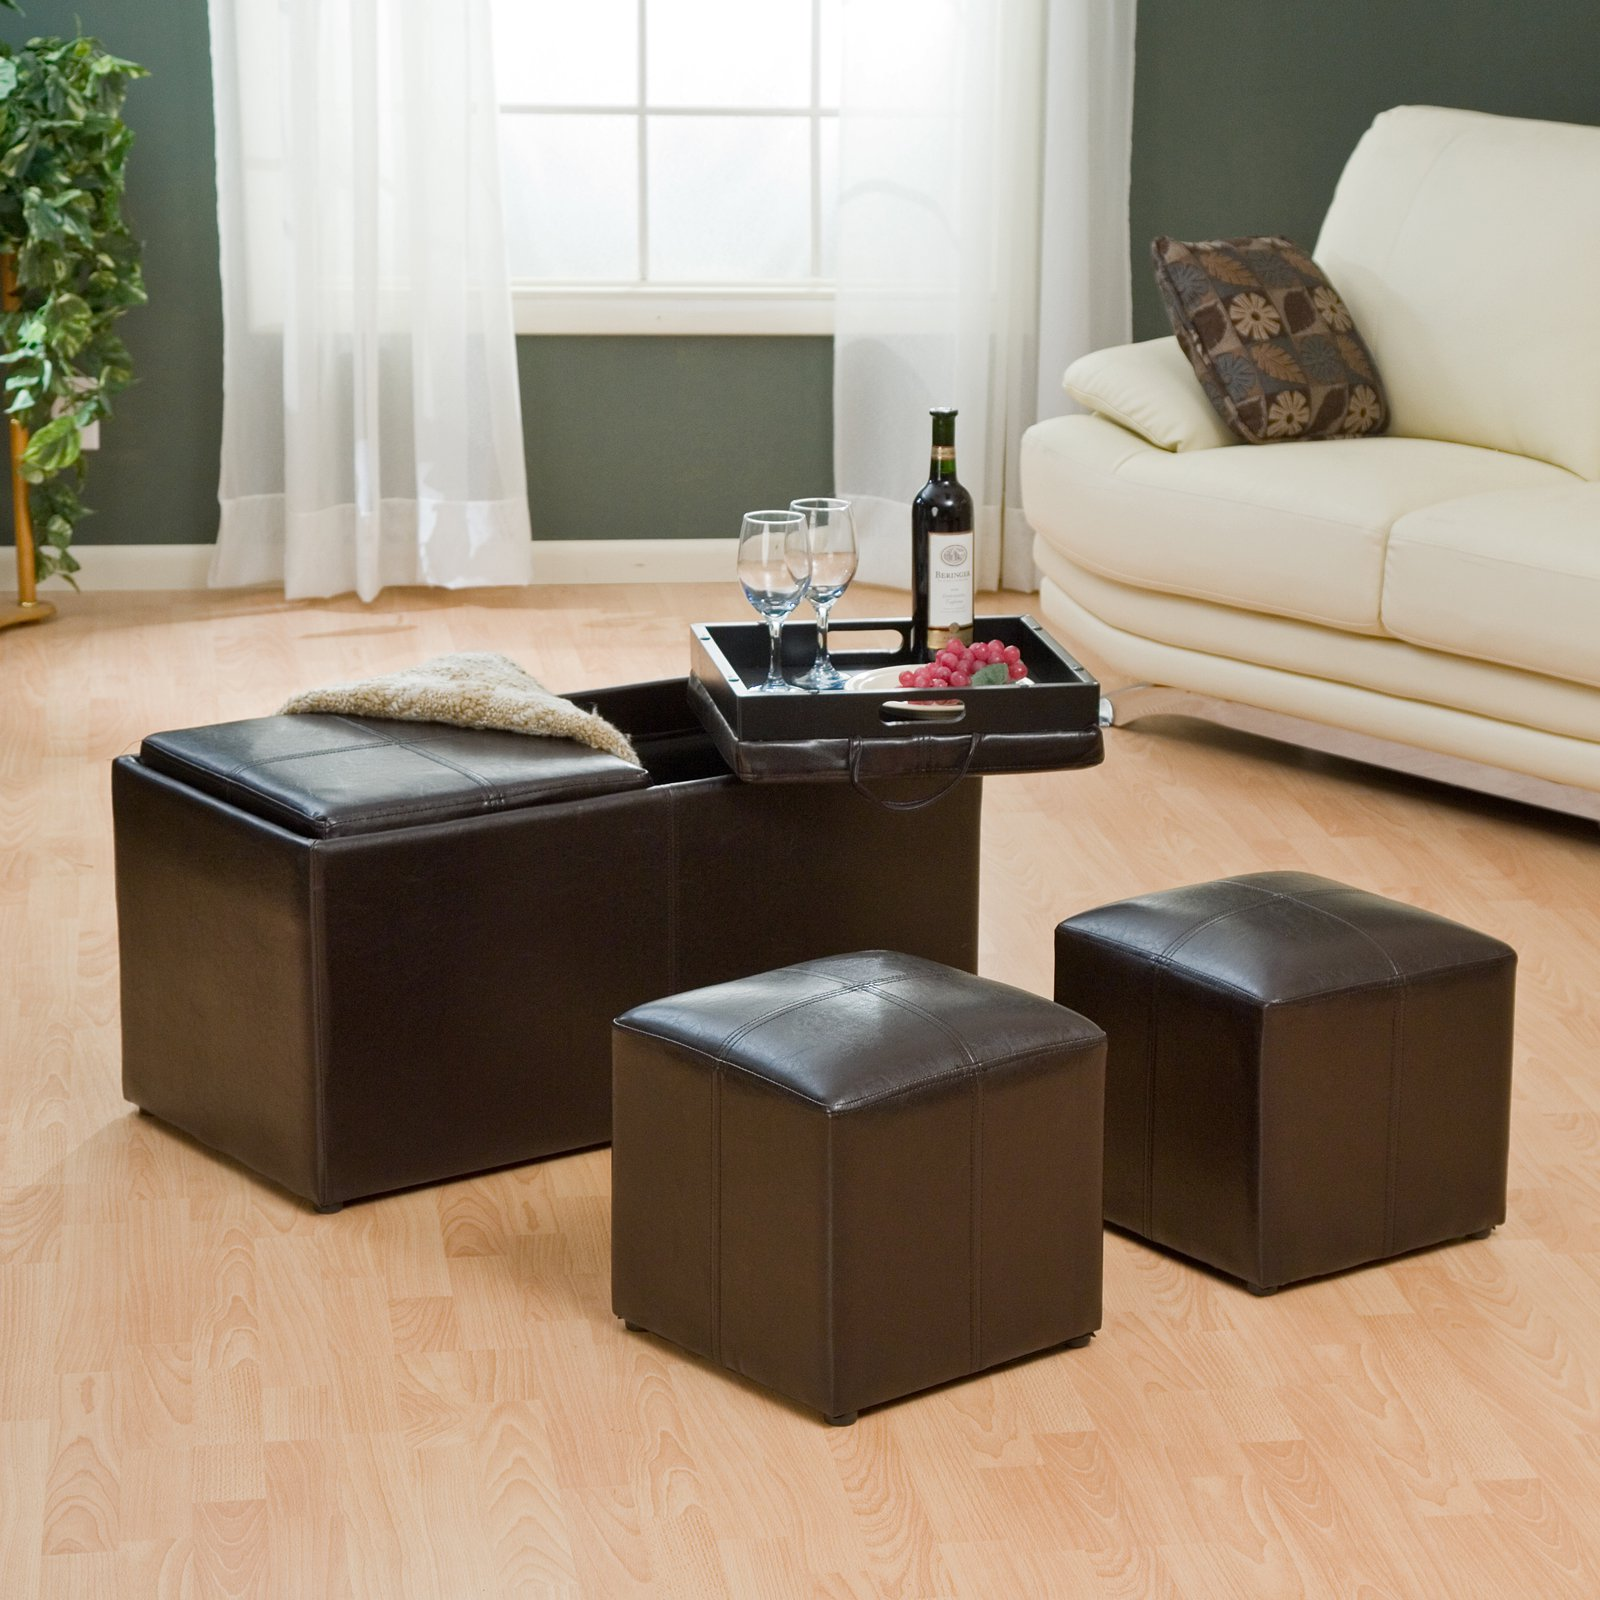 Superbe Jameson Double Storage Ottoman With Tray Tables   Walmart.com